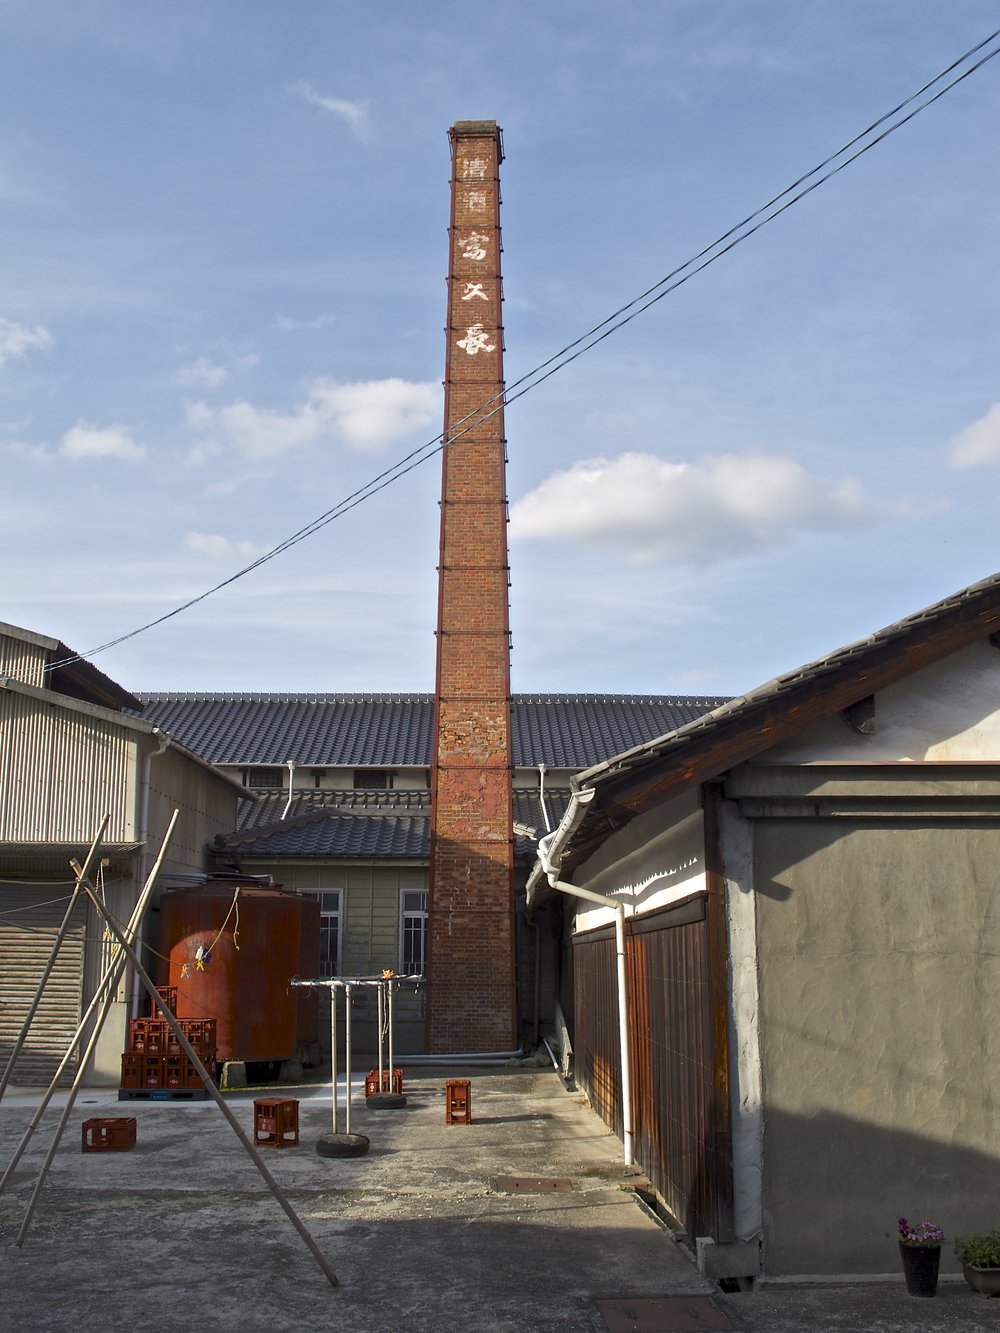 Imada Shuzo's red brick chimney is typical of sake breweries built in the Meiji era (1868-1912).